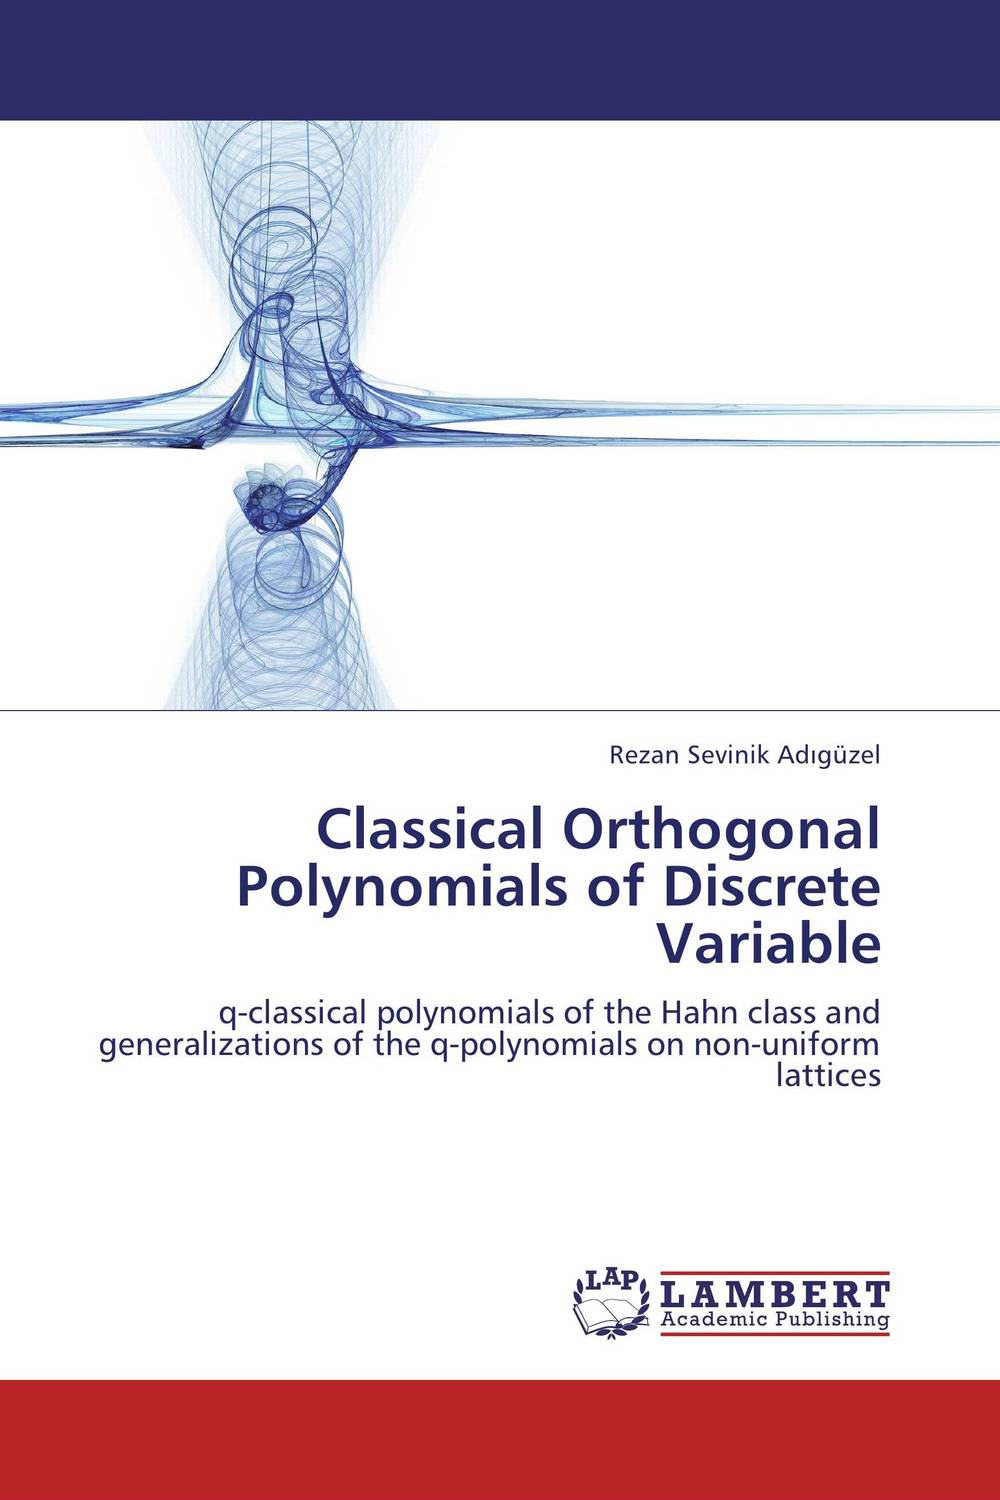 Classical Orthogonal Polynomials of Discrete Variable